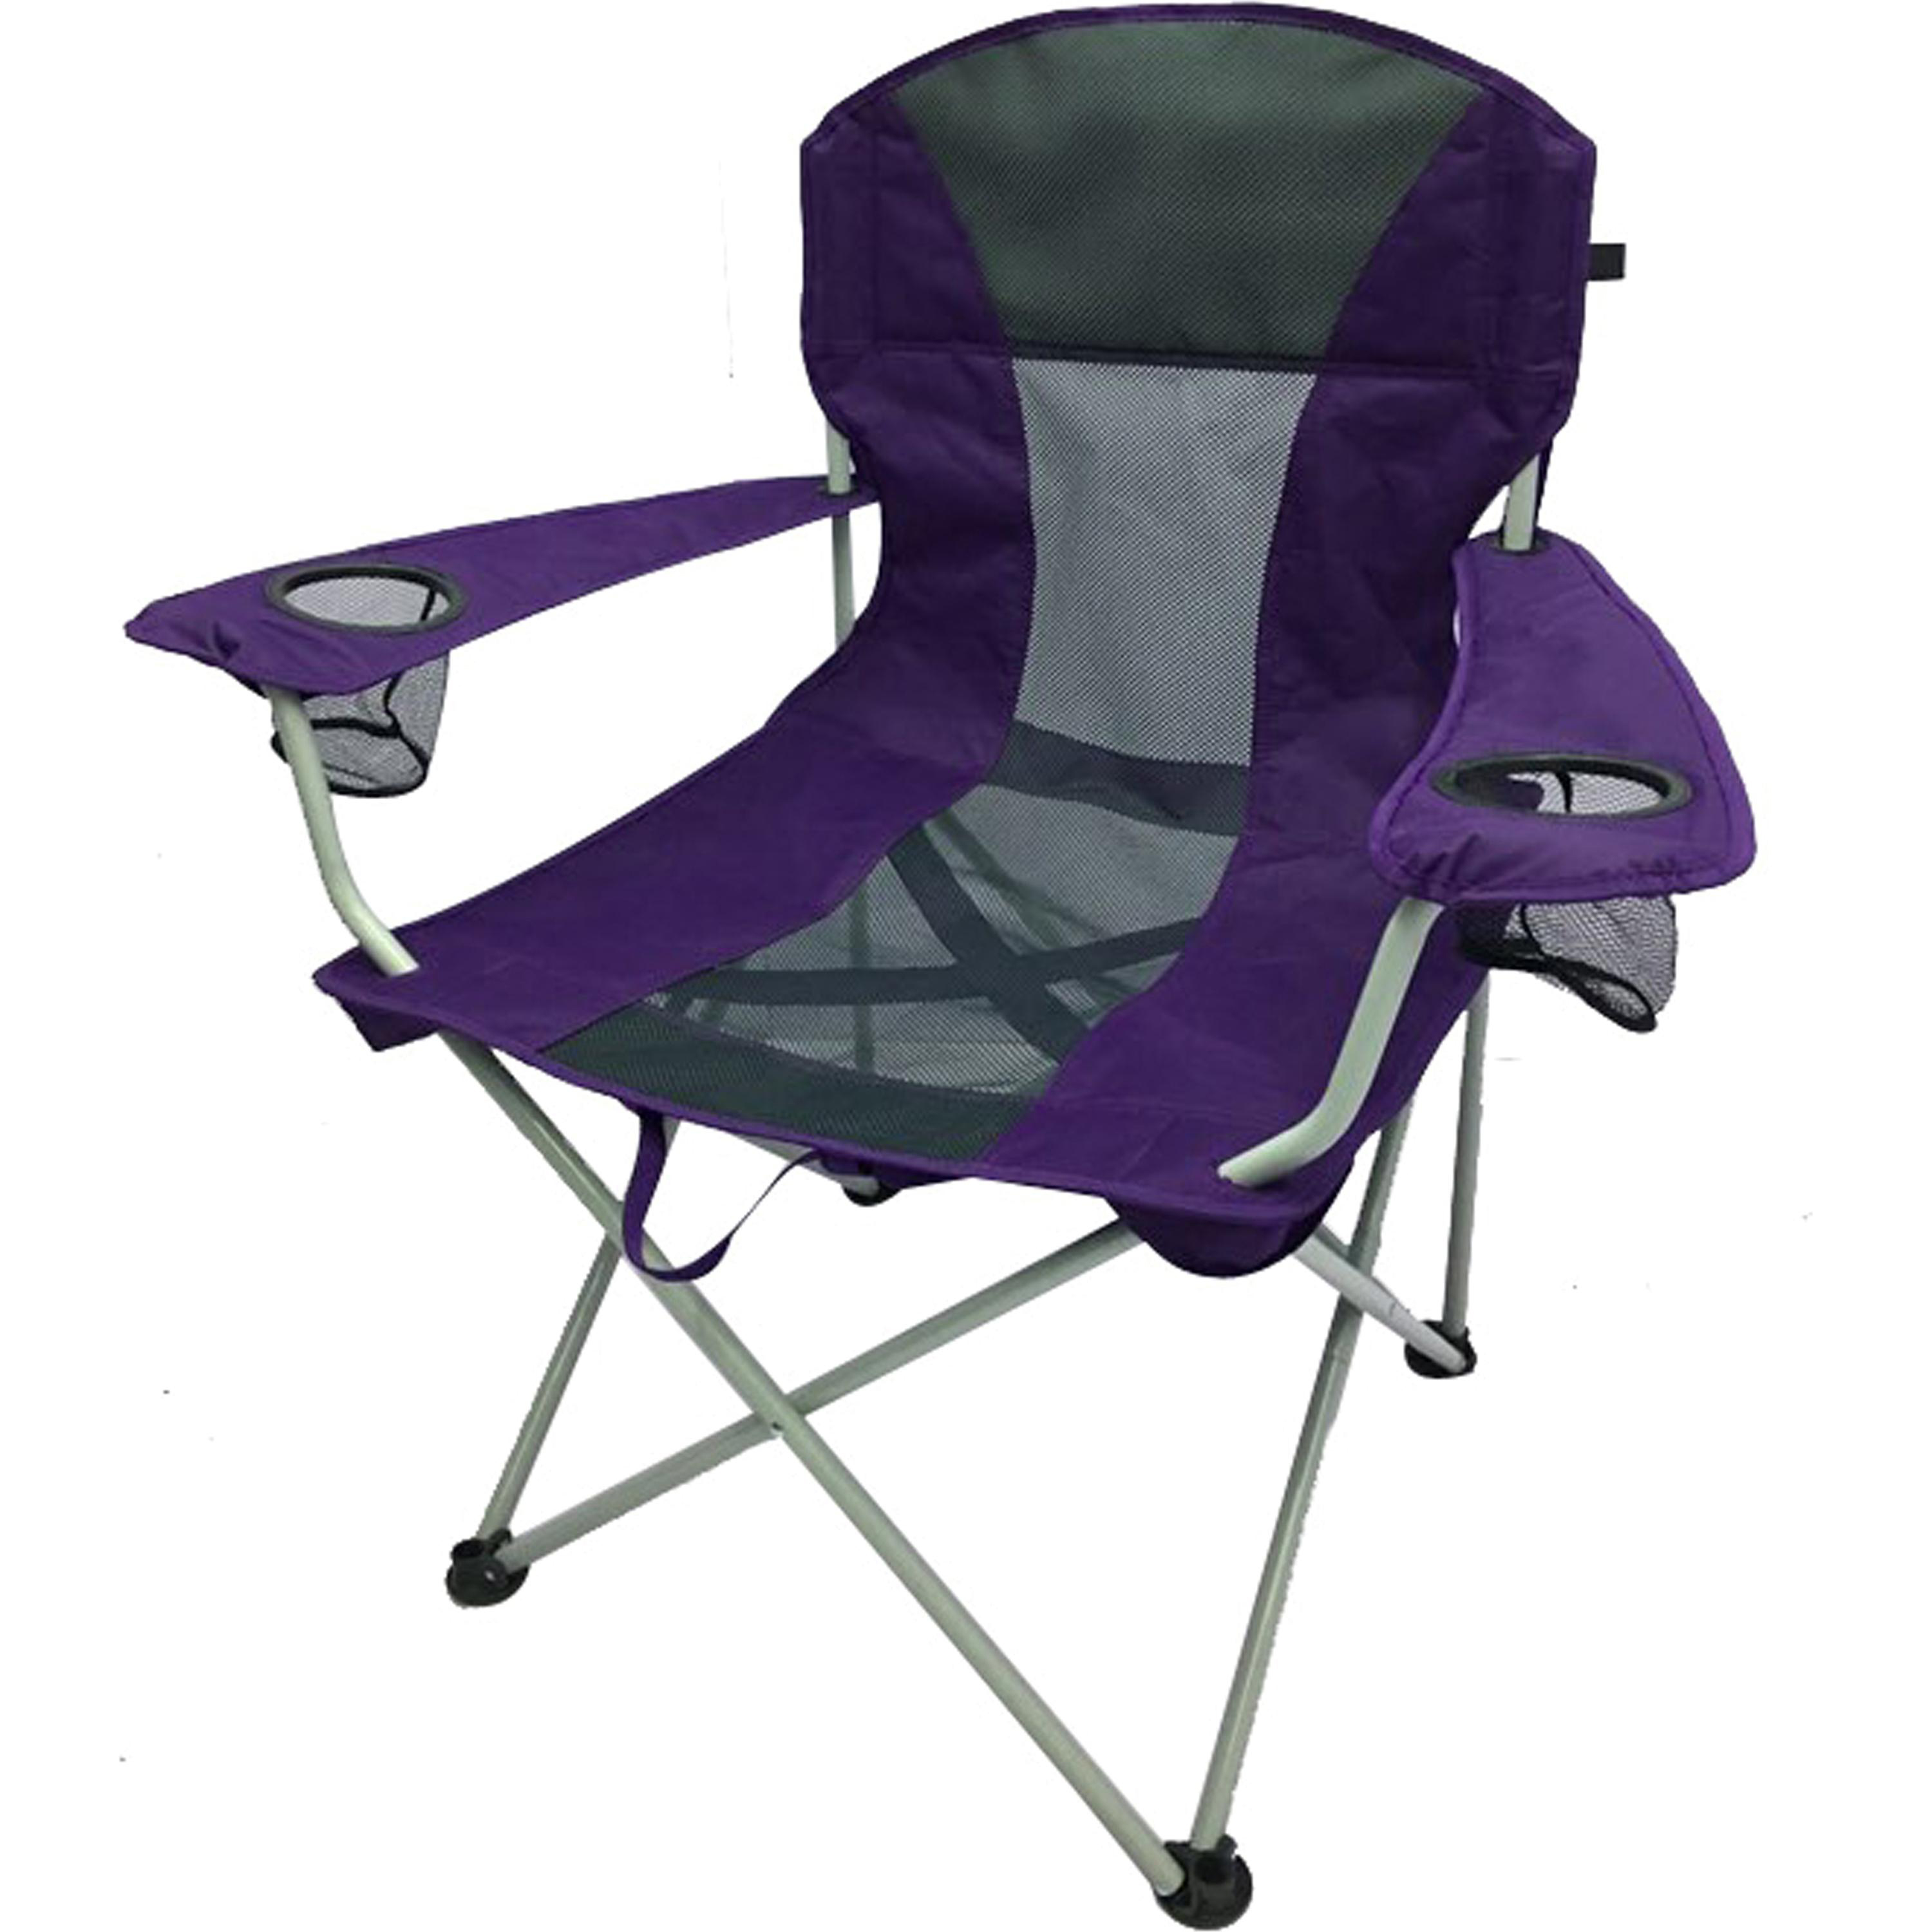 rocky oversized folding arm chair serta office reviews camping chairs ozark trail oversize mesh quad